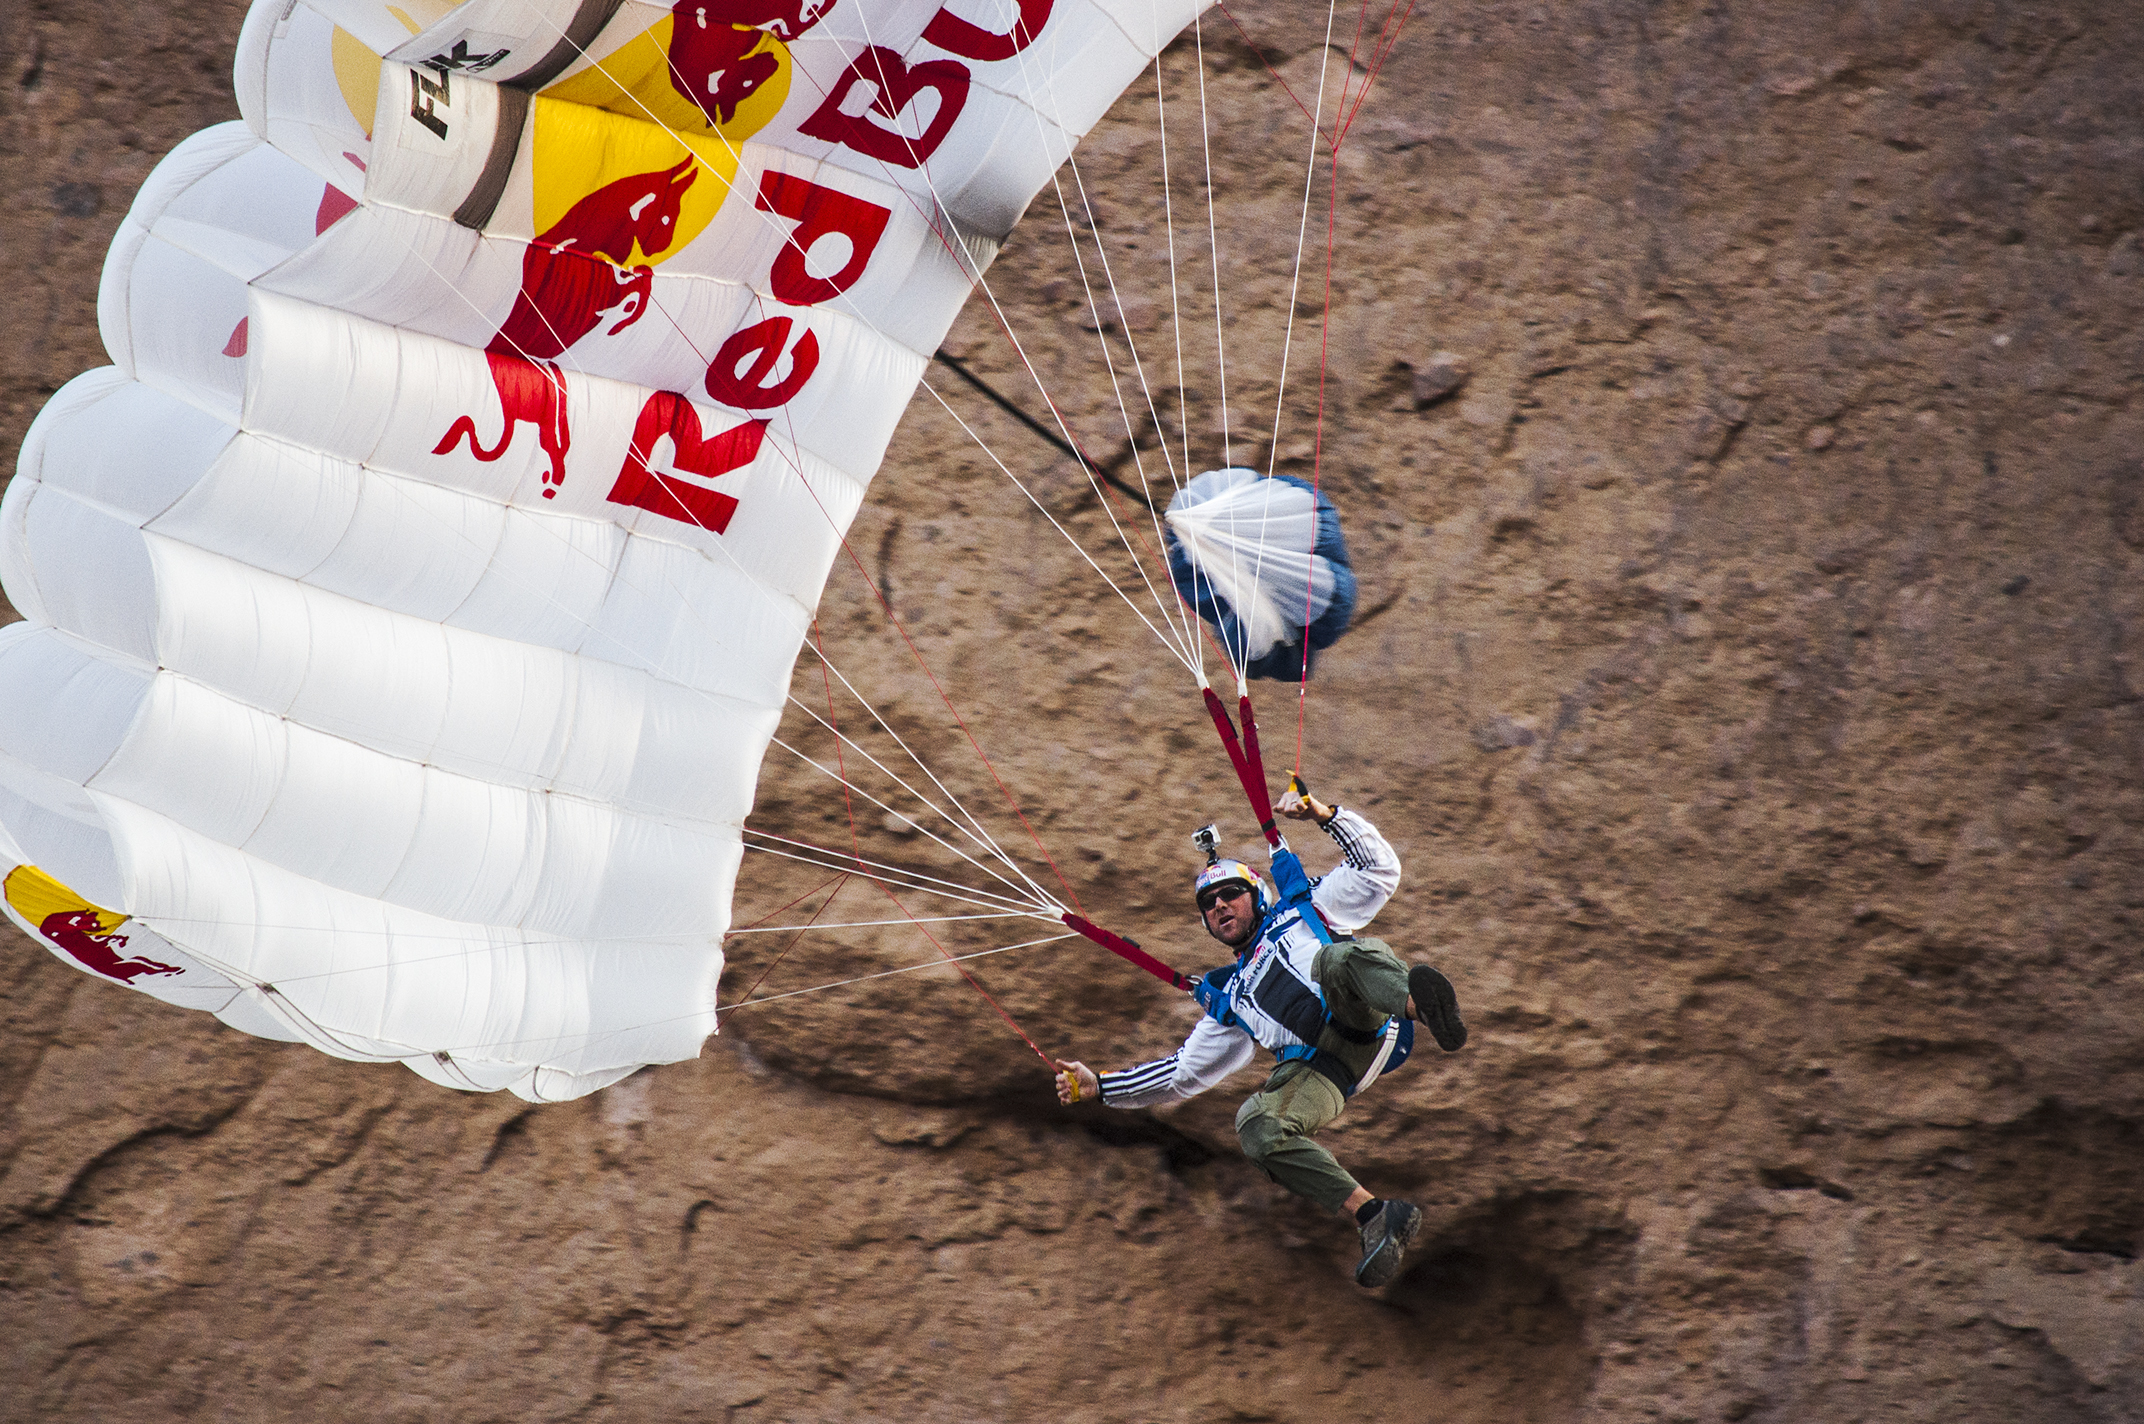 Miles Daisher BASE jumping off Camelback